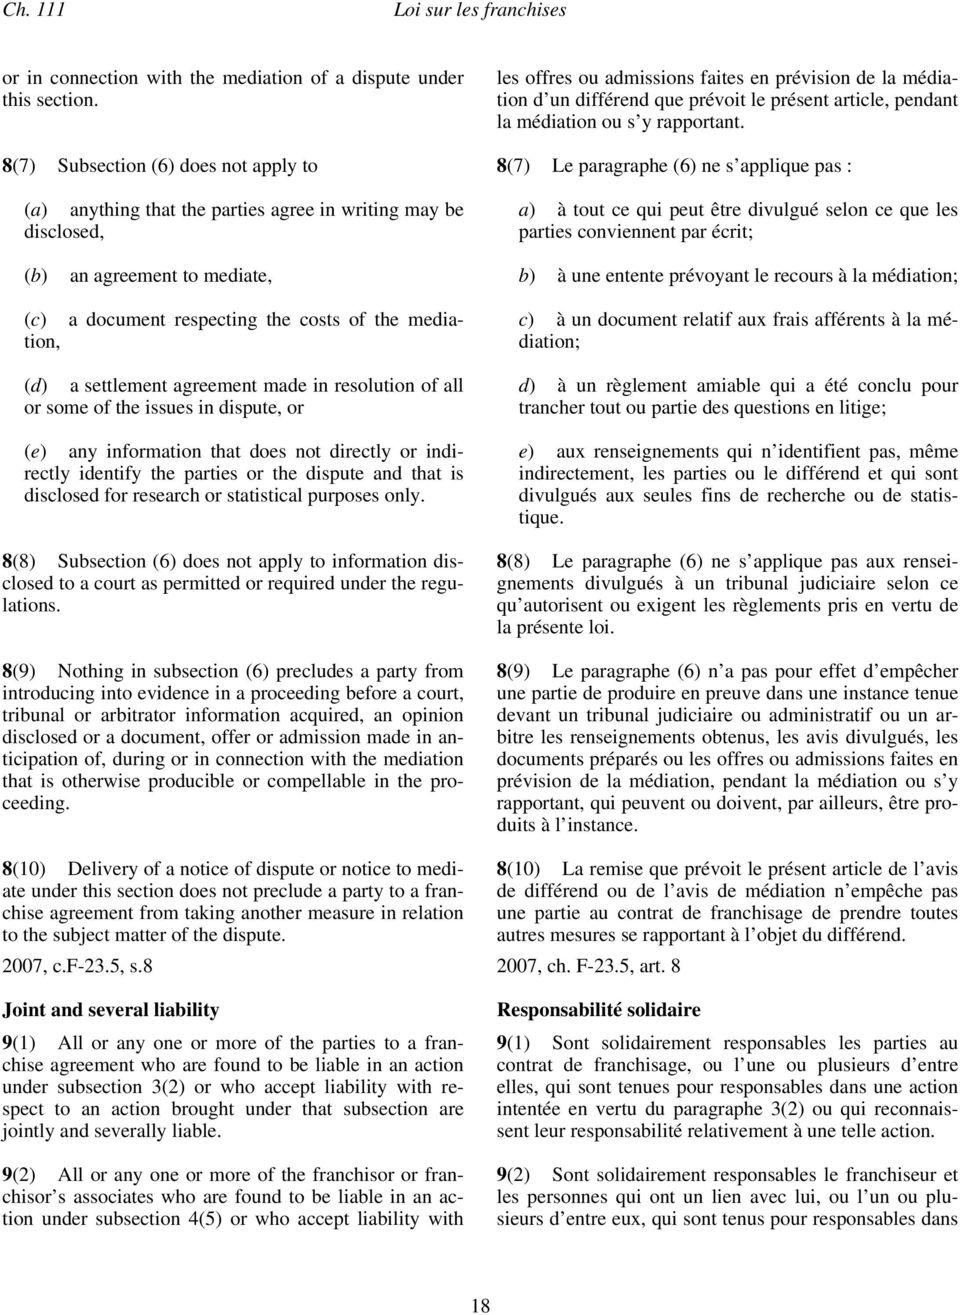 8(7) Subsection (6) does not apply to 8(7) Le paragraphe (6) ne s applique pas : (a) anything that the parties agree in writing may be disclosed, a) à tout ce qui peut être divulgué selon ce que les